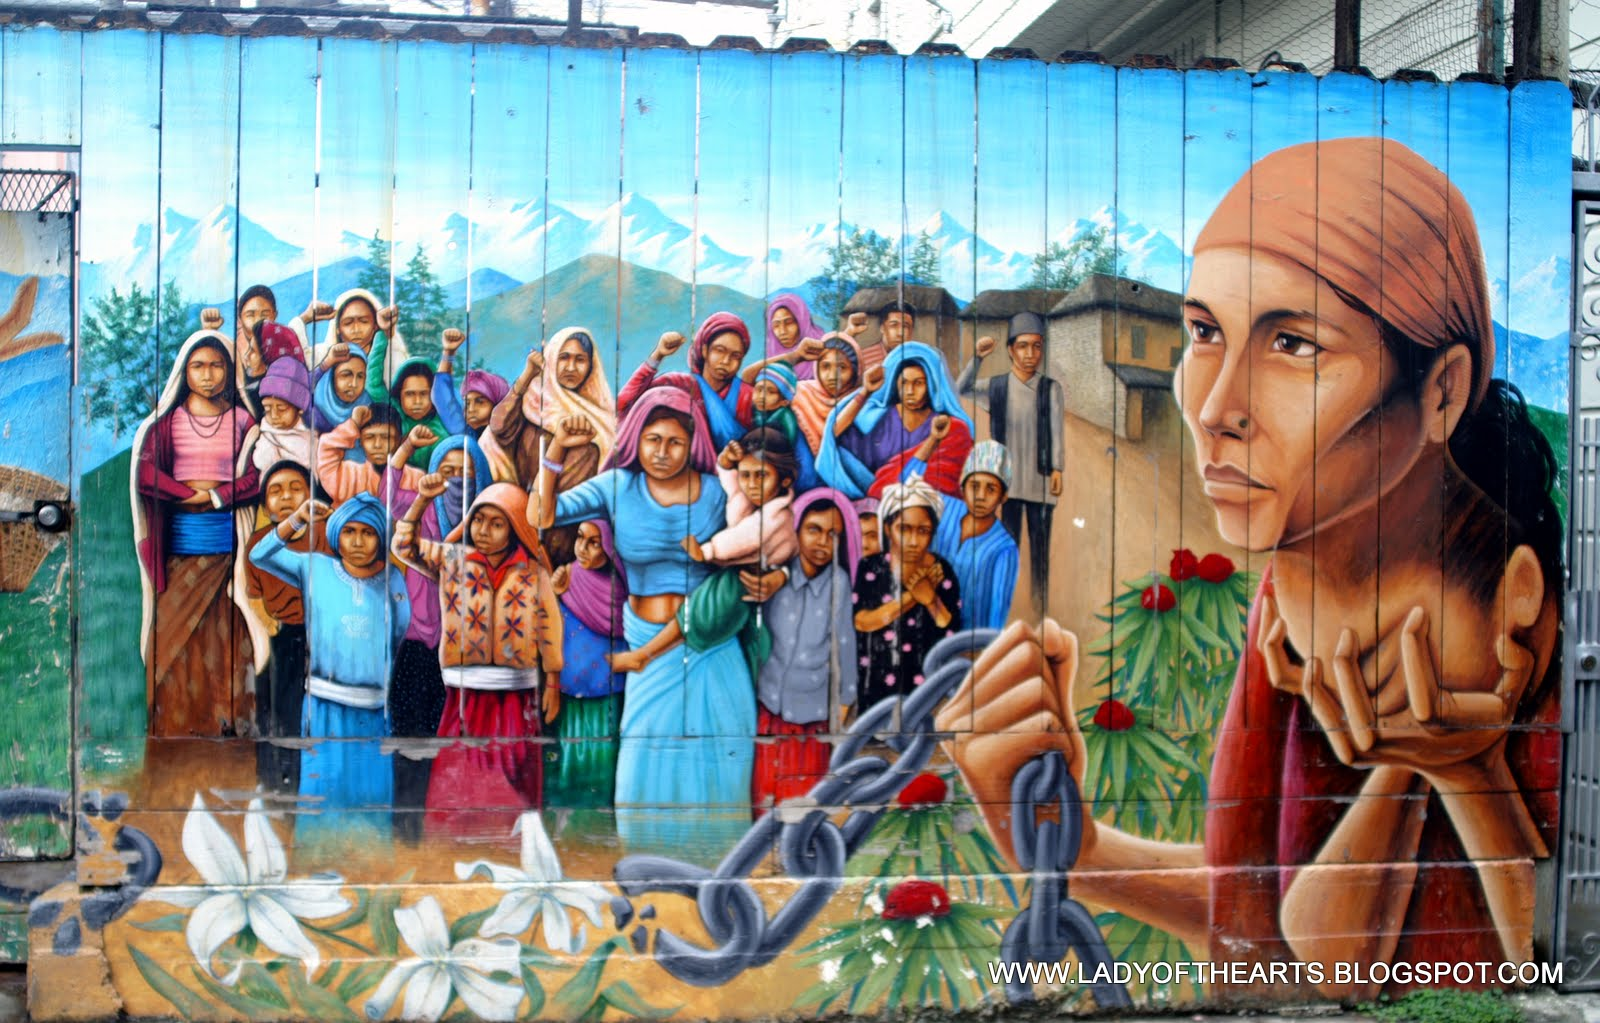 Lady of 39 the arts 39 the mission mural art for Chicano mural movement